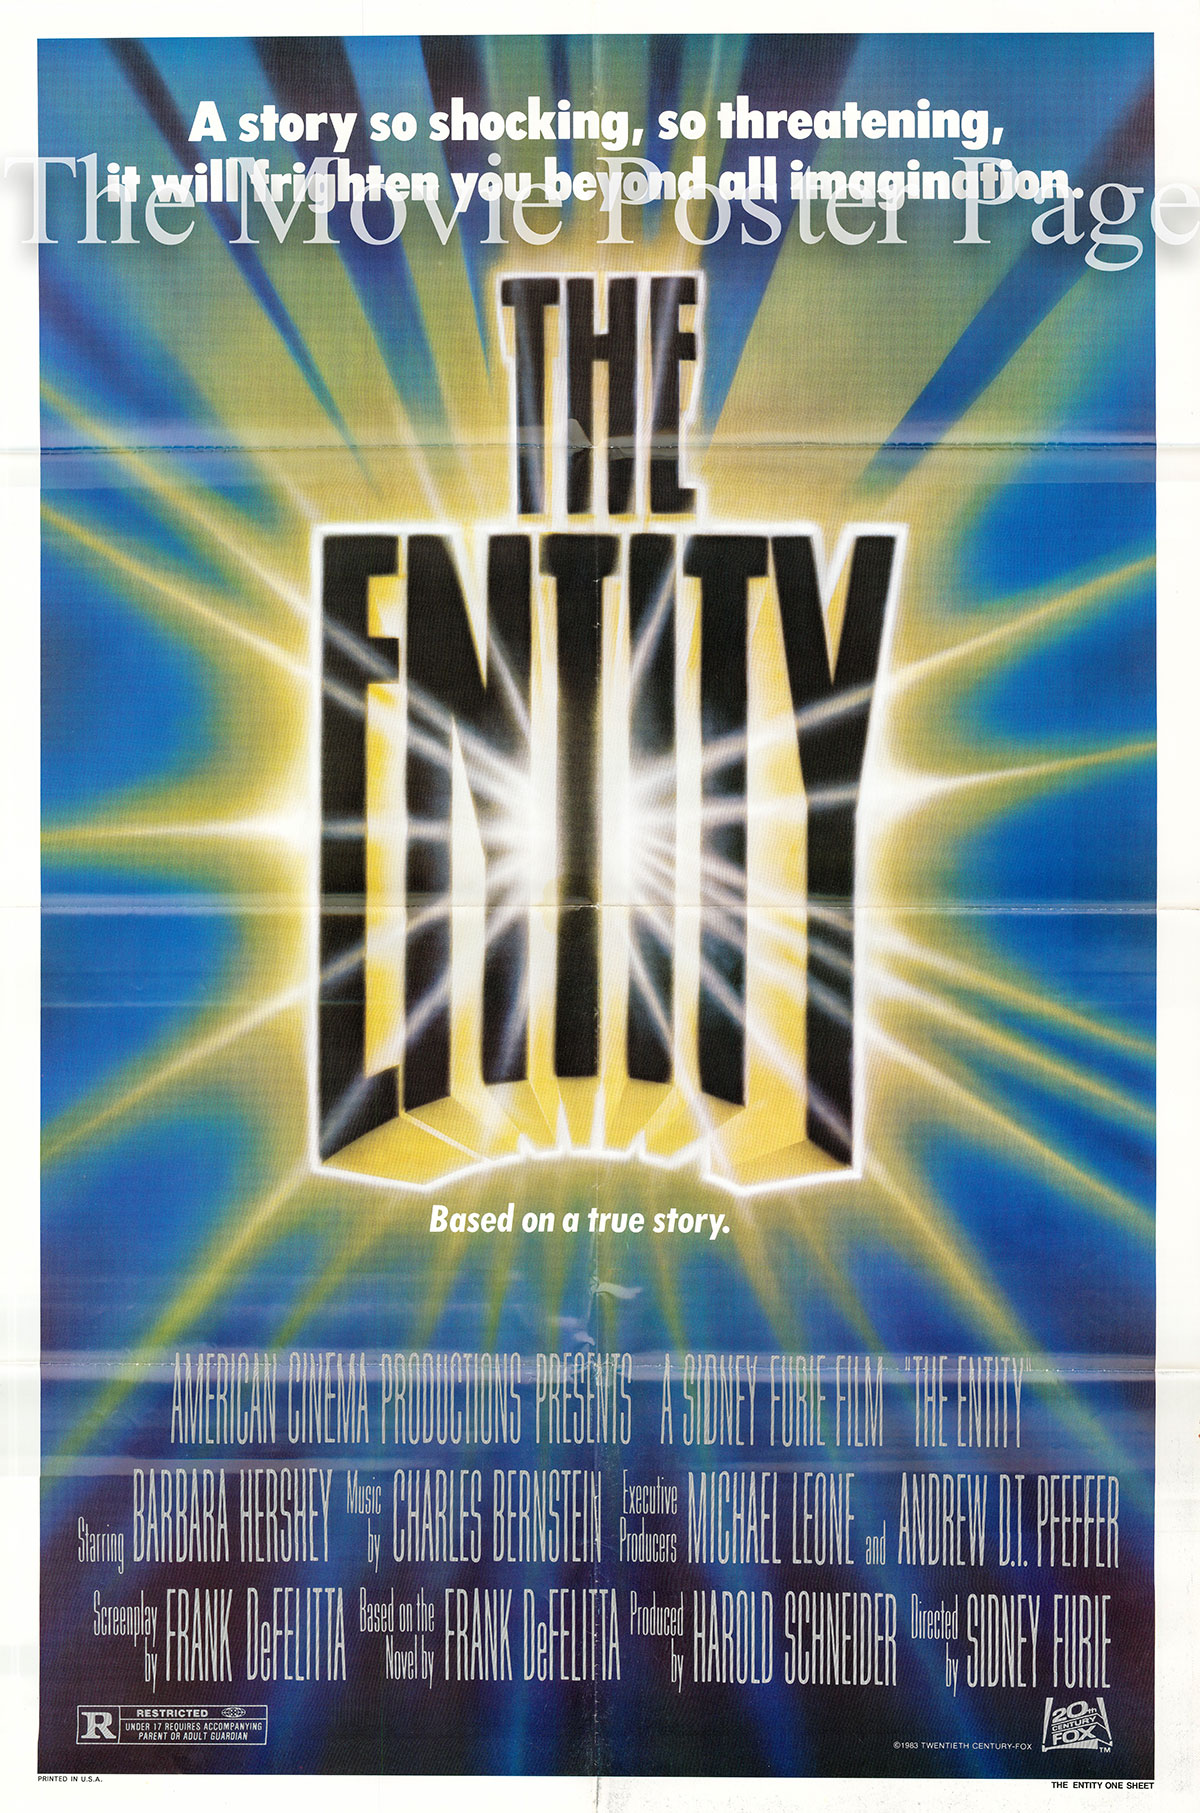 Pictured is a US one-sheet poster for the 1981 Sidney J. Furie film The Entity starring Barbara Hershey as Carla Moran.